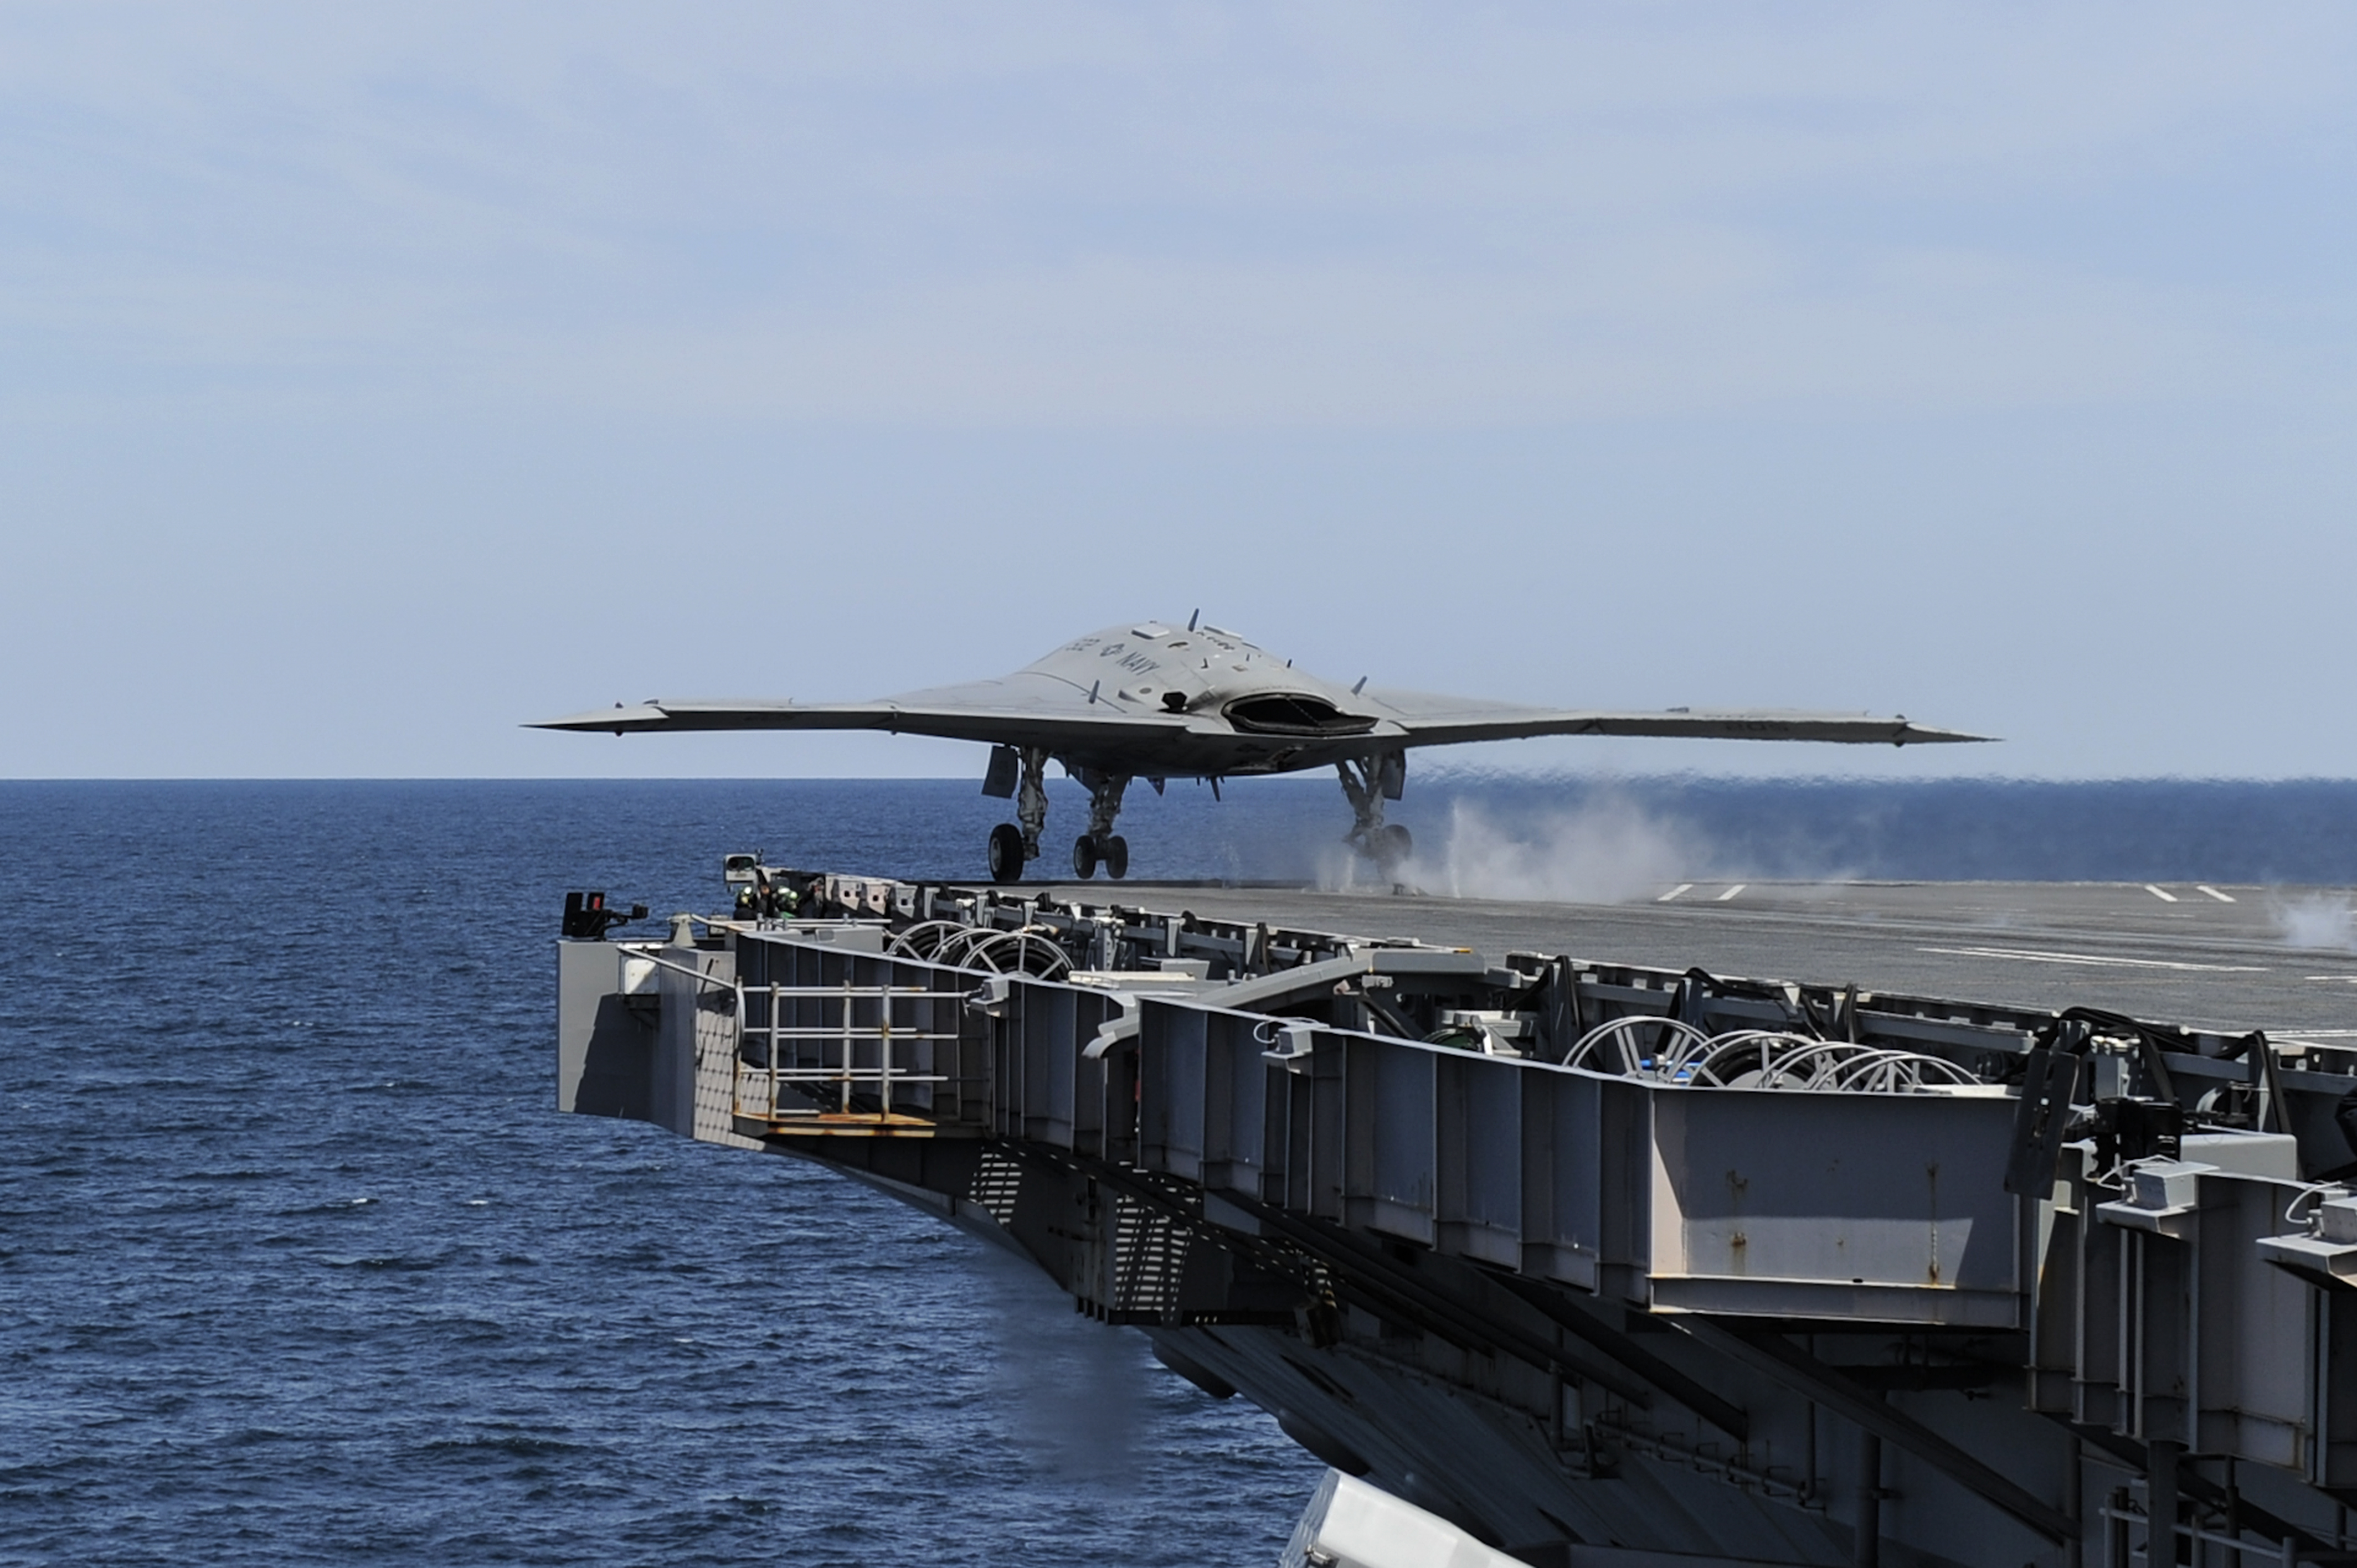 X-47B makes catapult launch from USS George H.W. Bush